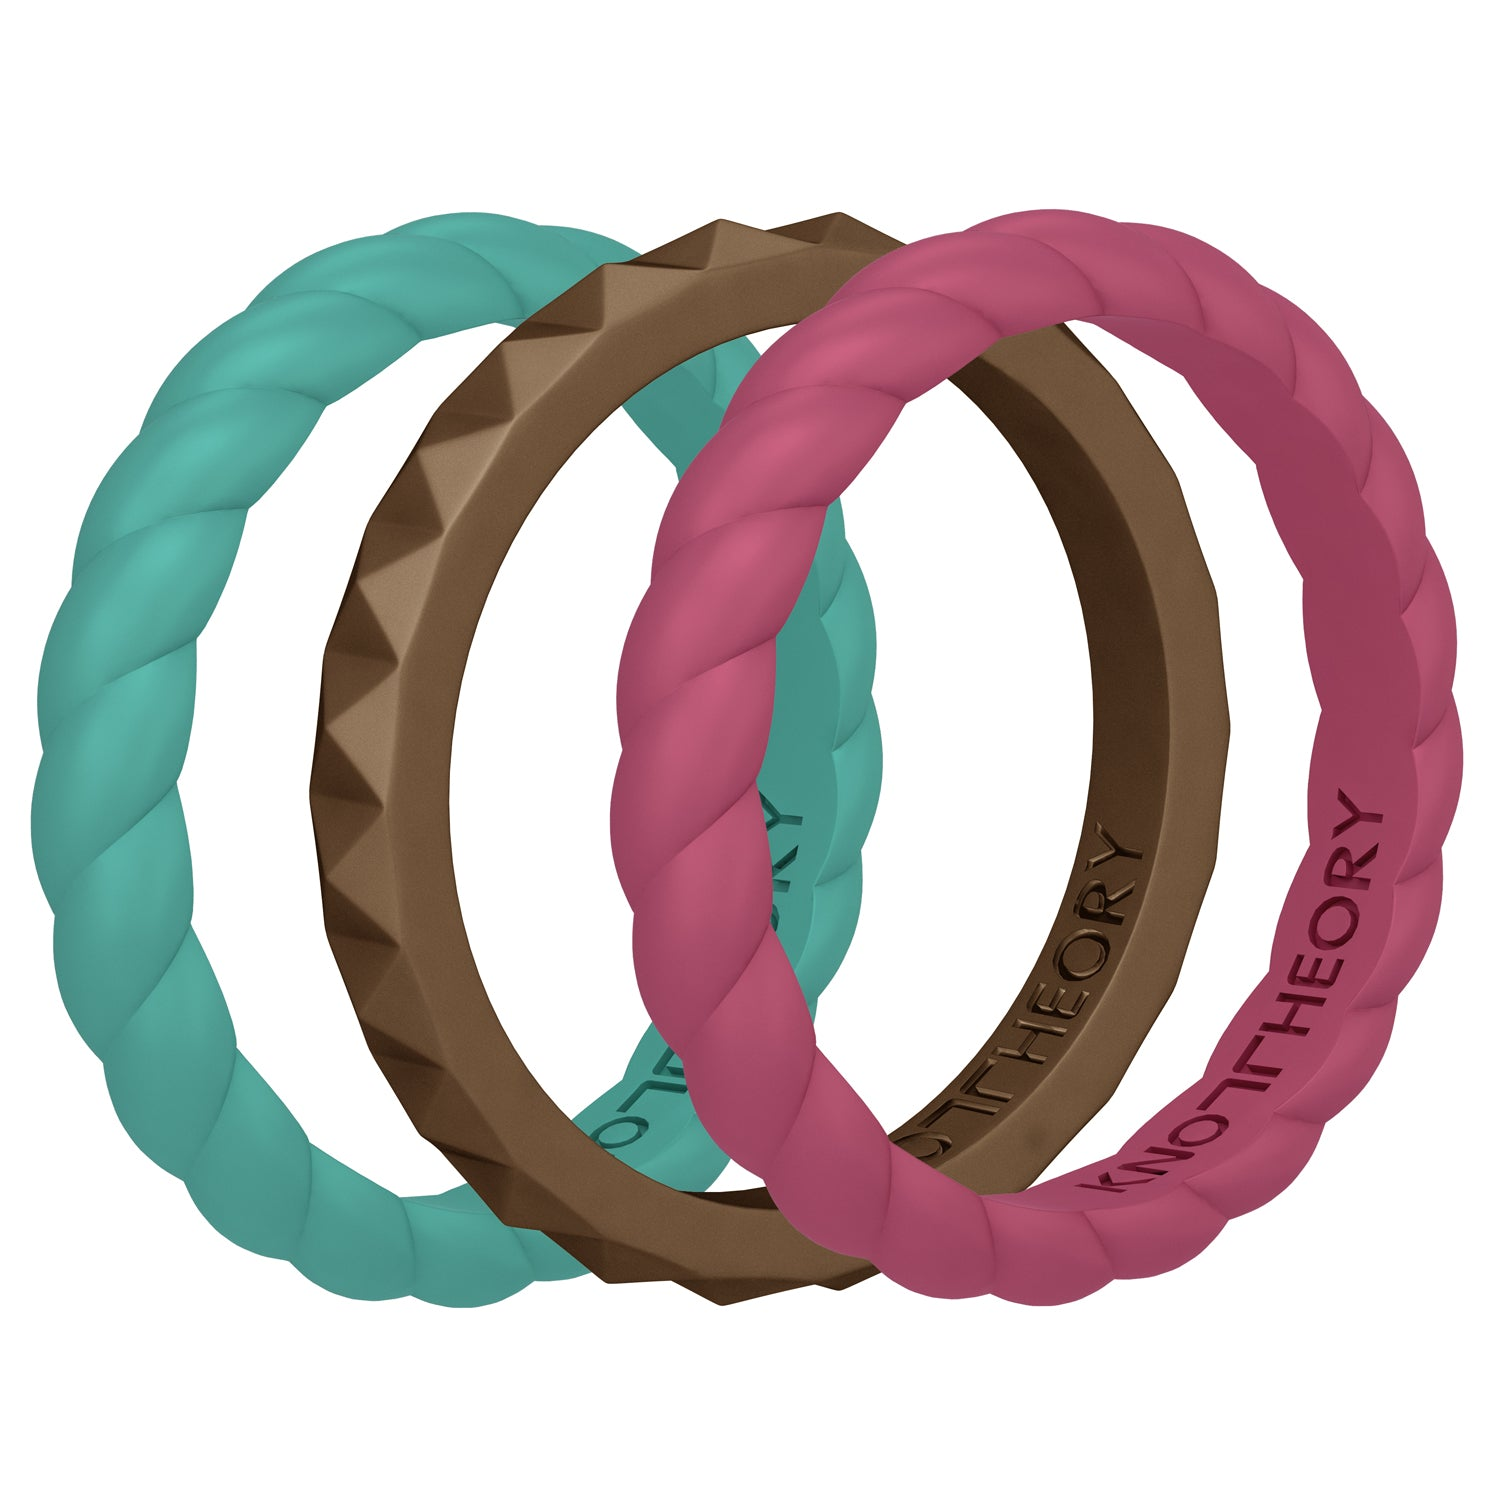 JOY Stackable Silicone Wedding Rings for Women - 3-Pack in Teal, Raspberry, and Antique Gold